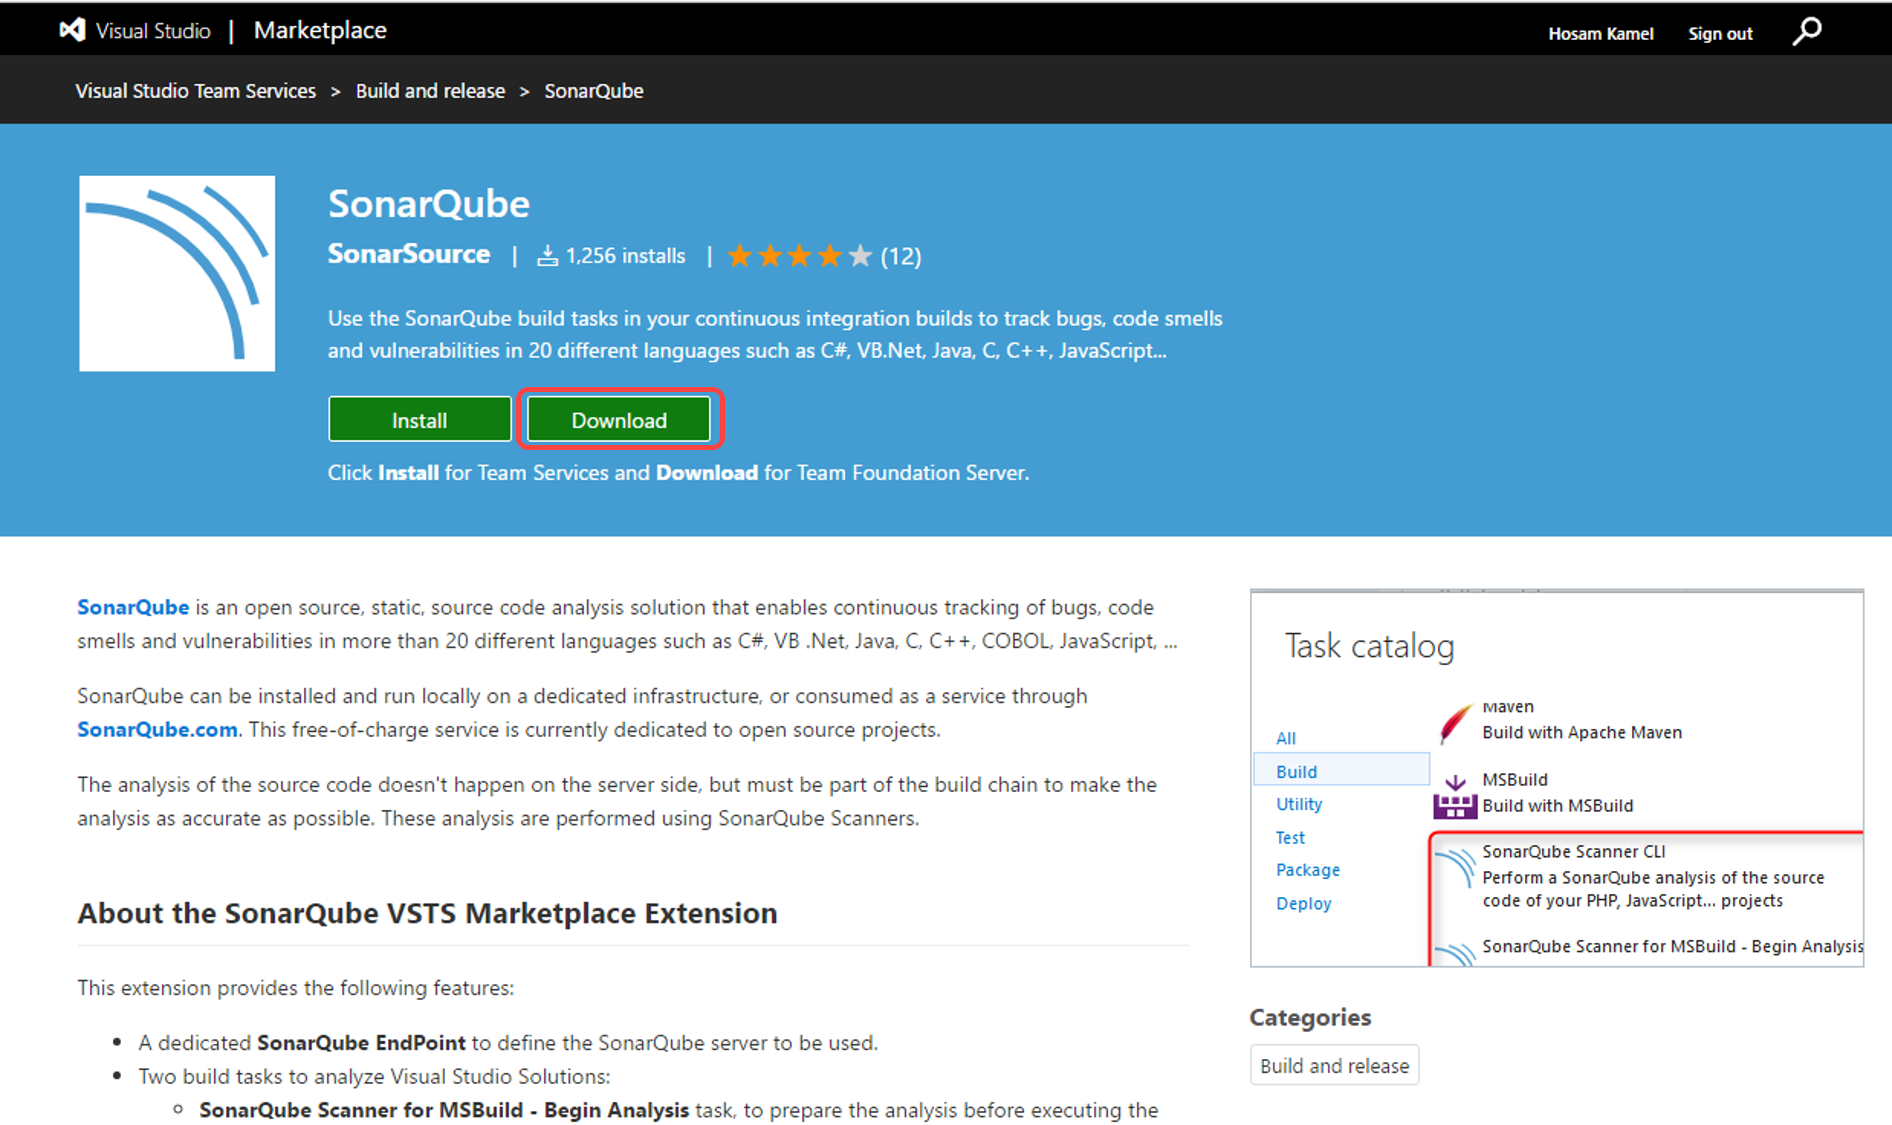 Managing Technical Debt with Team Foundation Server and SonarQube